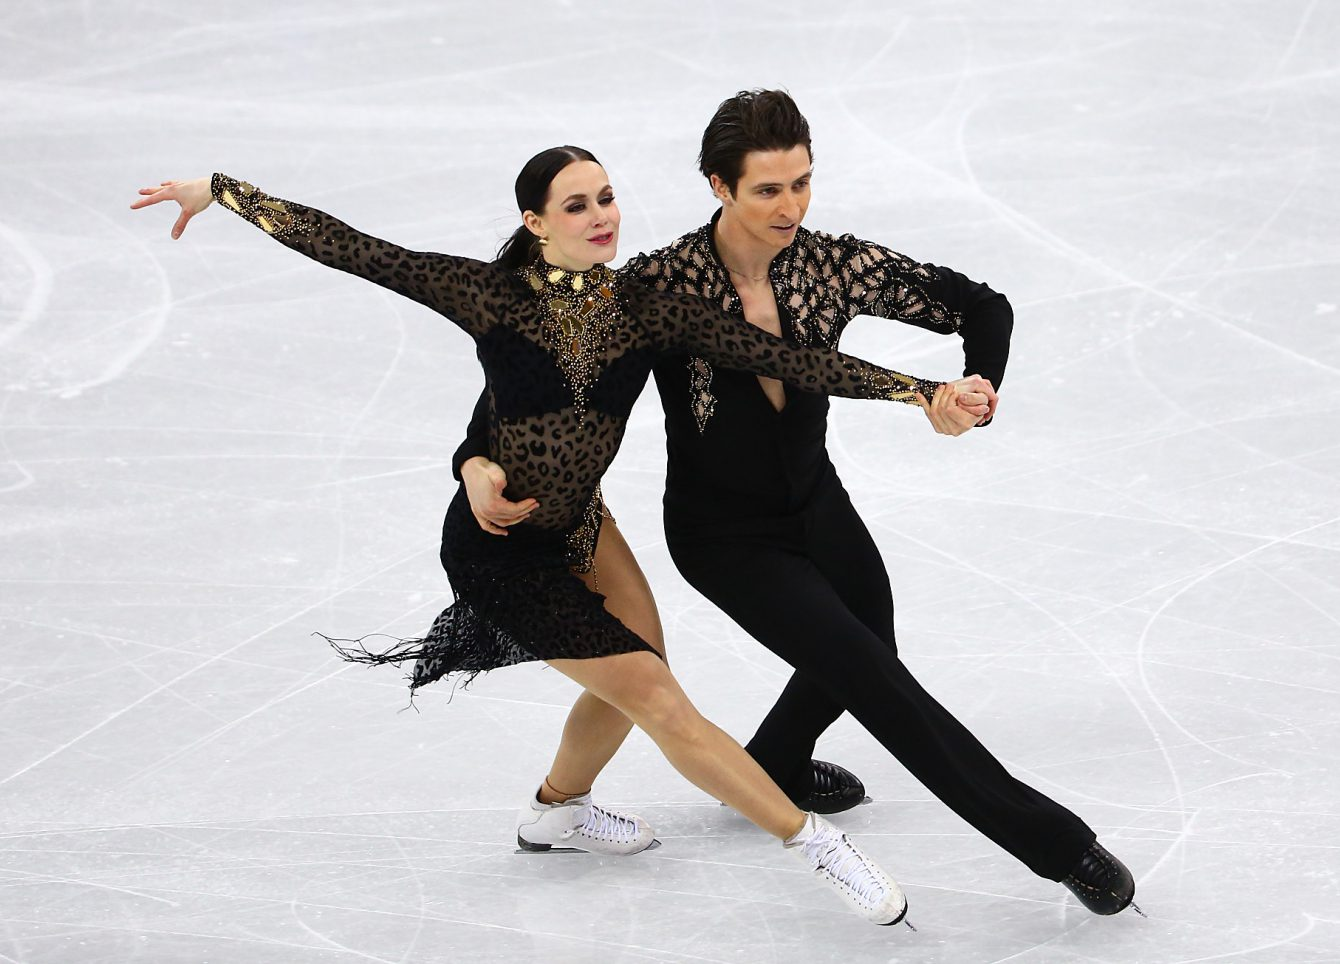 Tessa Virtue and Scott Moir in competition at the PyeongChang Games. Both are dressed in all black outfits.